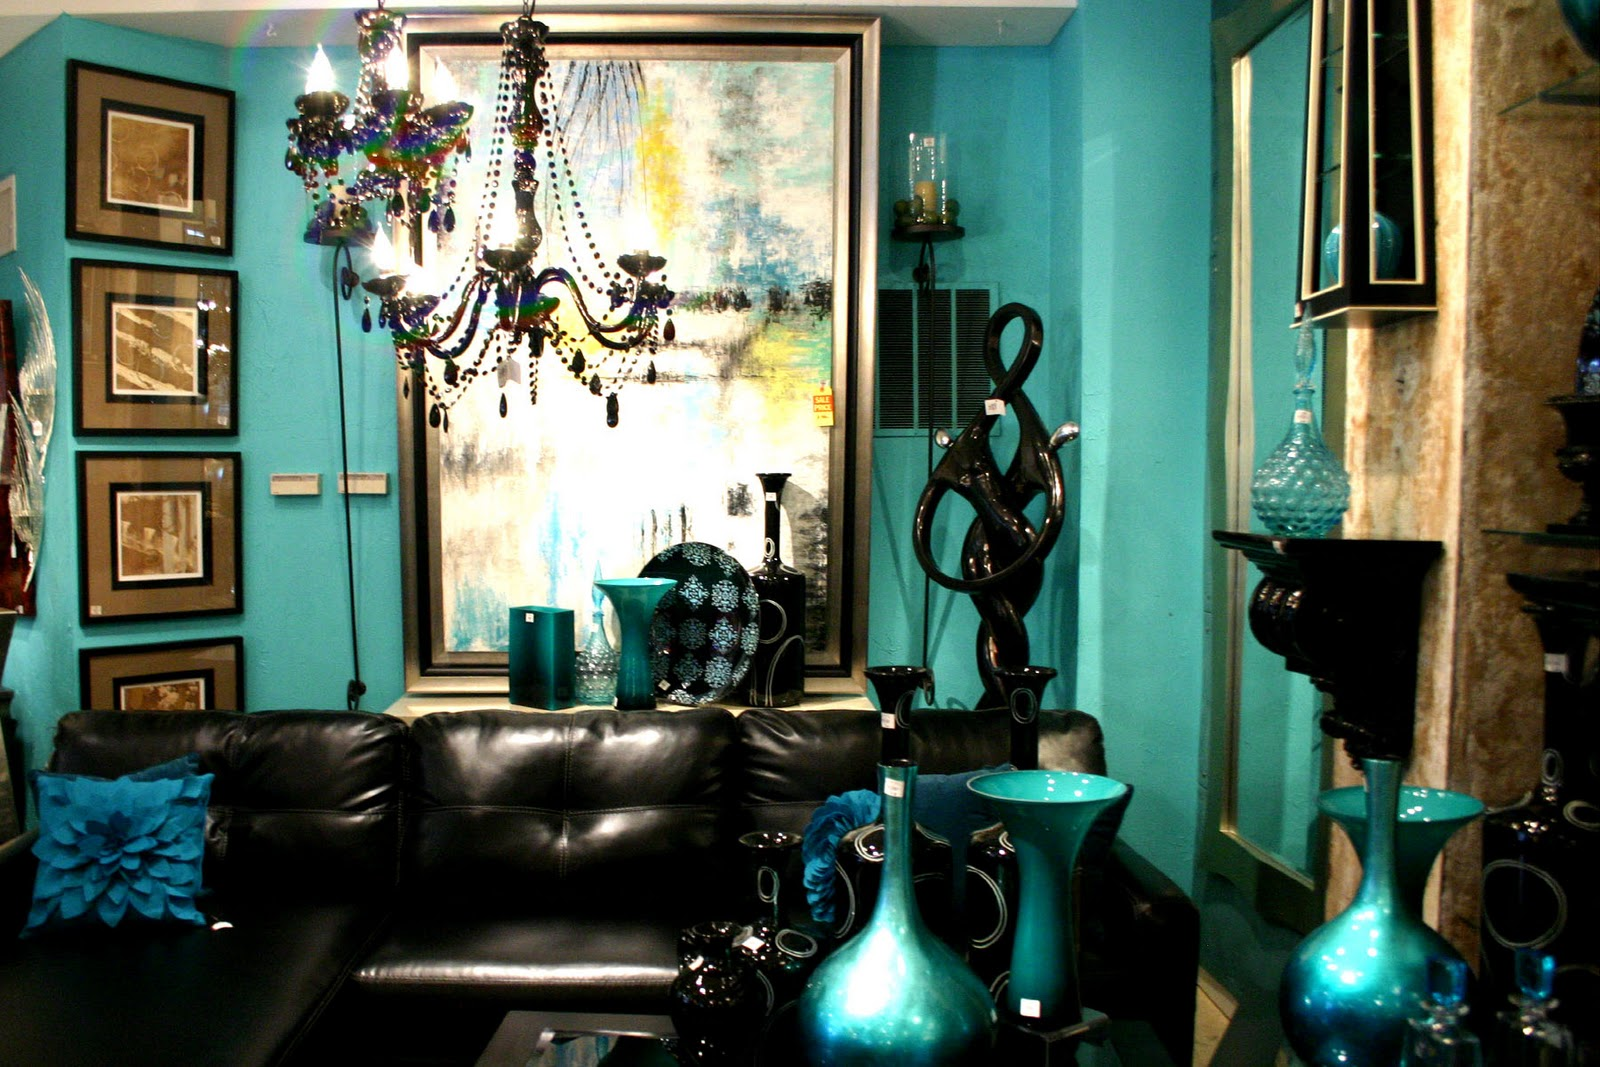 Black and teal bedroom living room decor ideas with